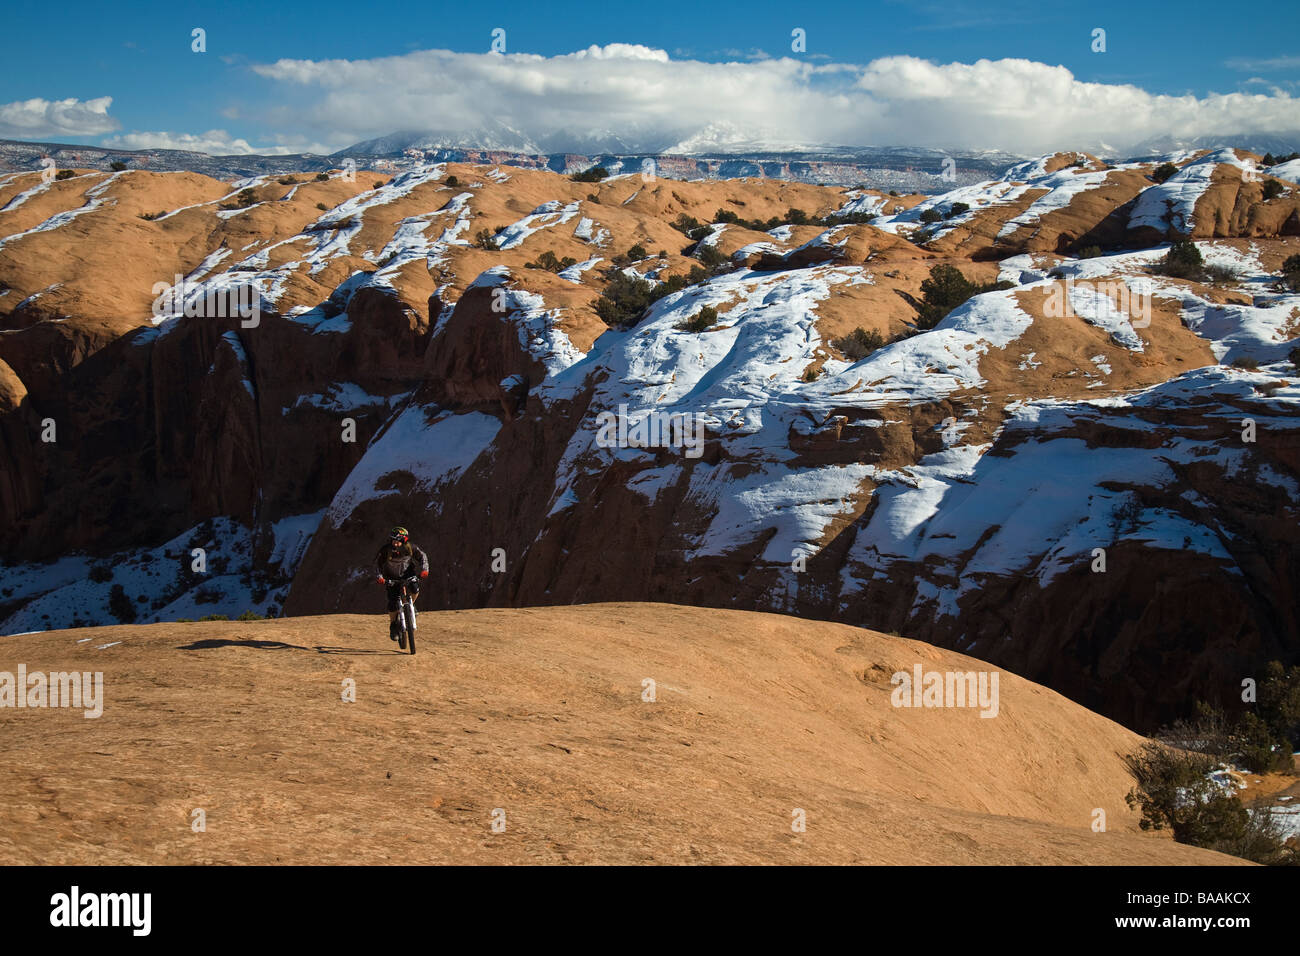 Mountain biker riding on slickrock in Moab, Utah. - Stock Image